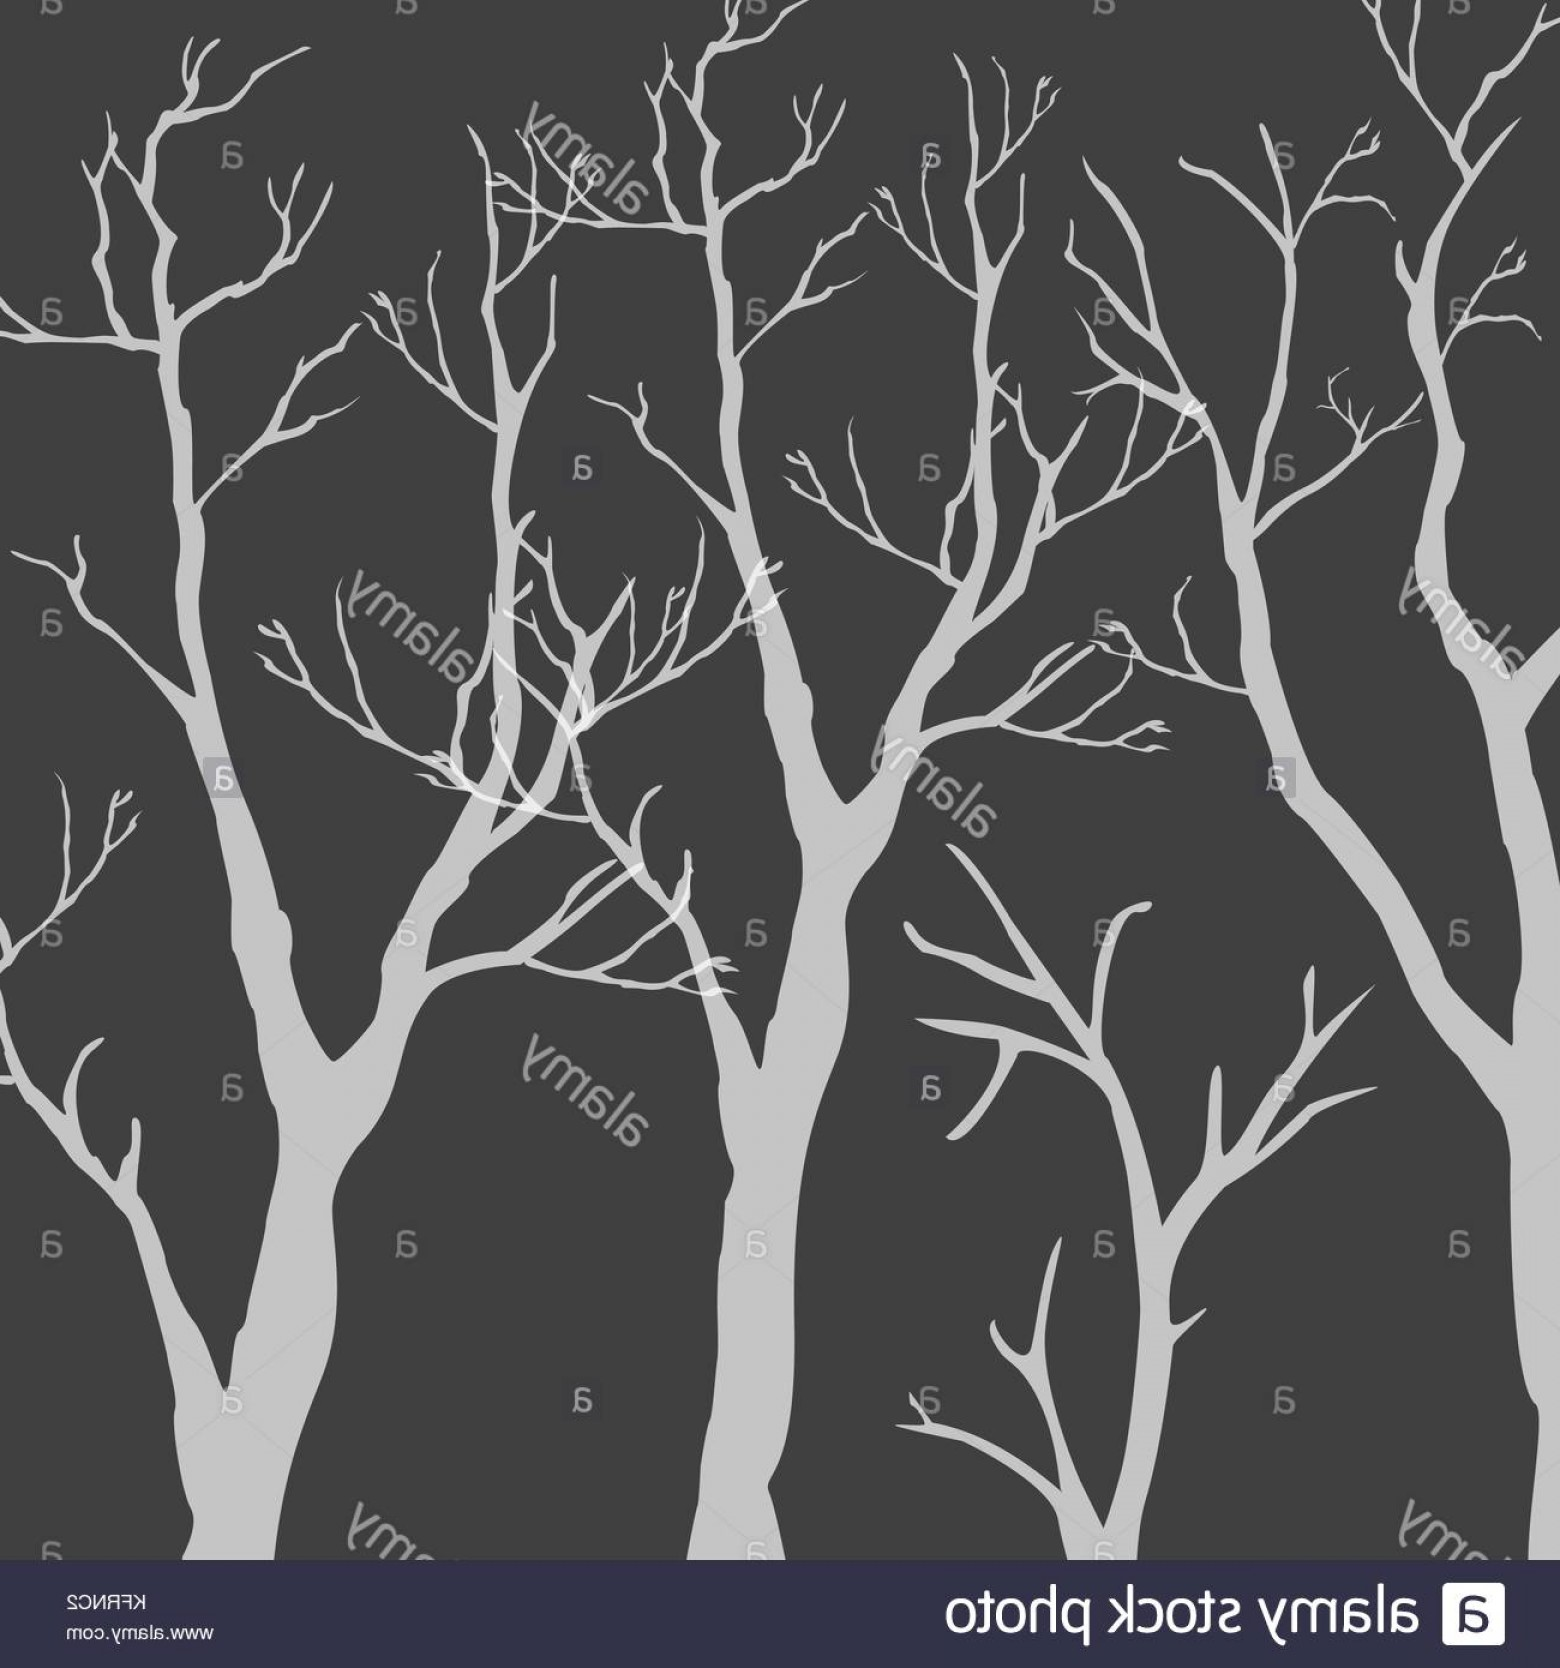 Continuous Tree Branch Vector Image: Stock Image Trees With No Leaves Continuous Pattern Partly Seamless Vector Illustration